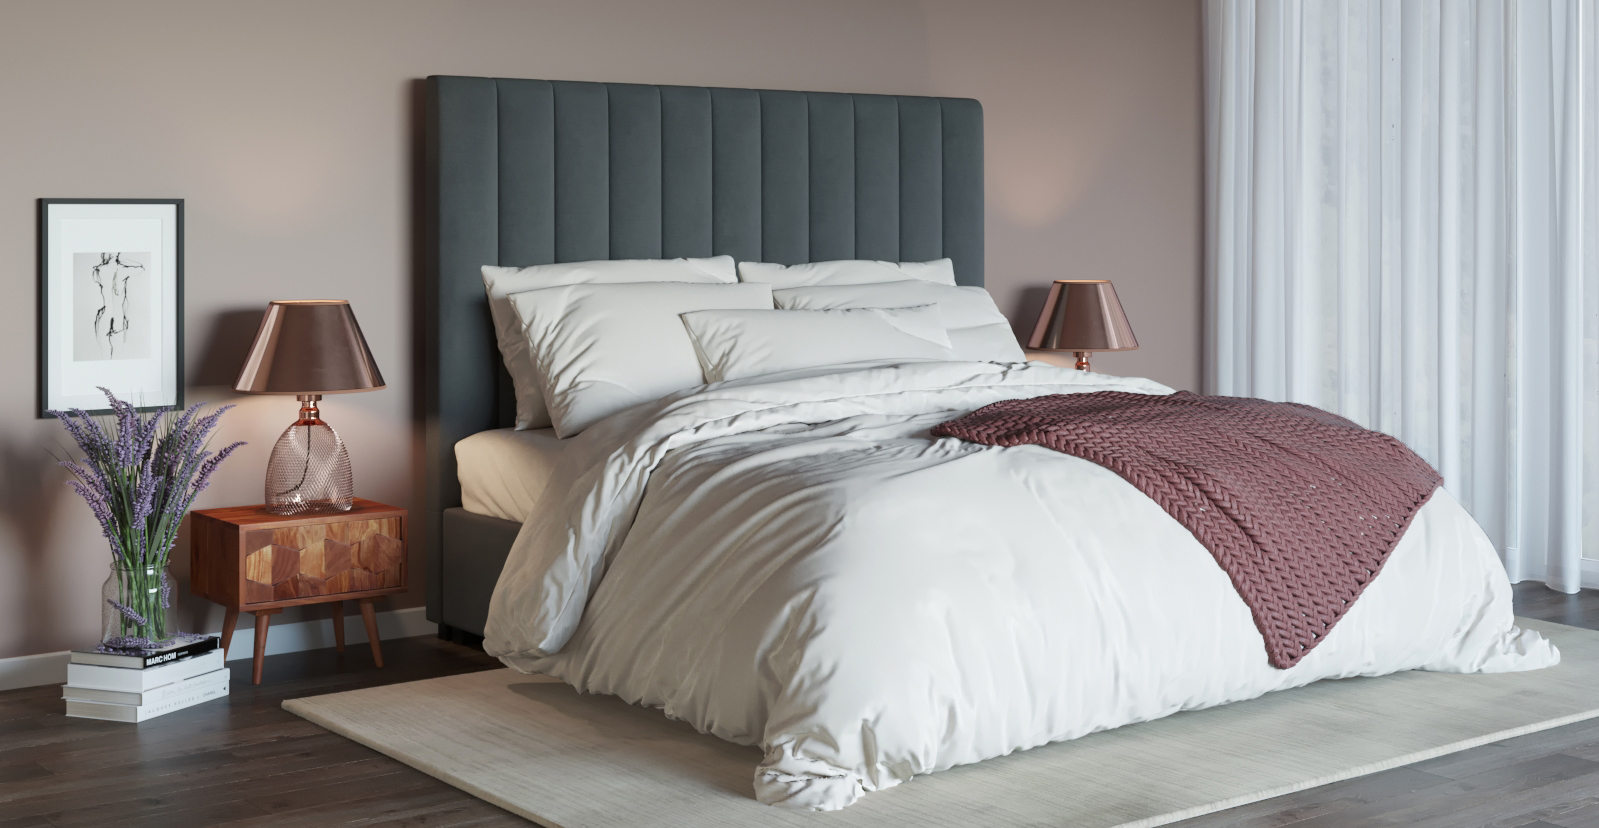 Brosa Megan Tall King Size Bed Head styled in classic bedroom